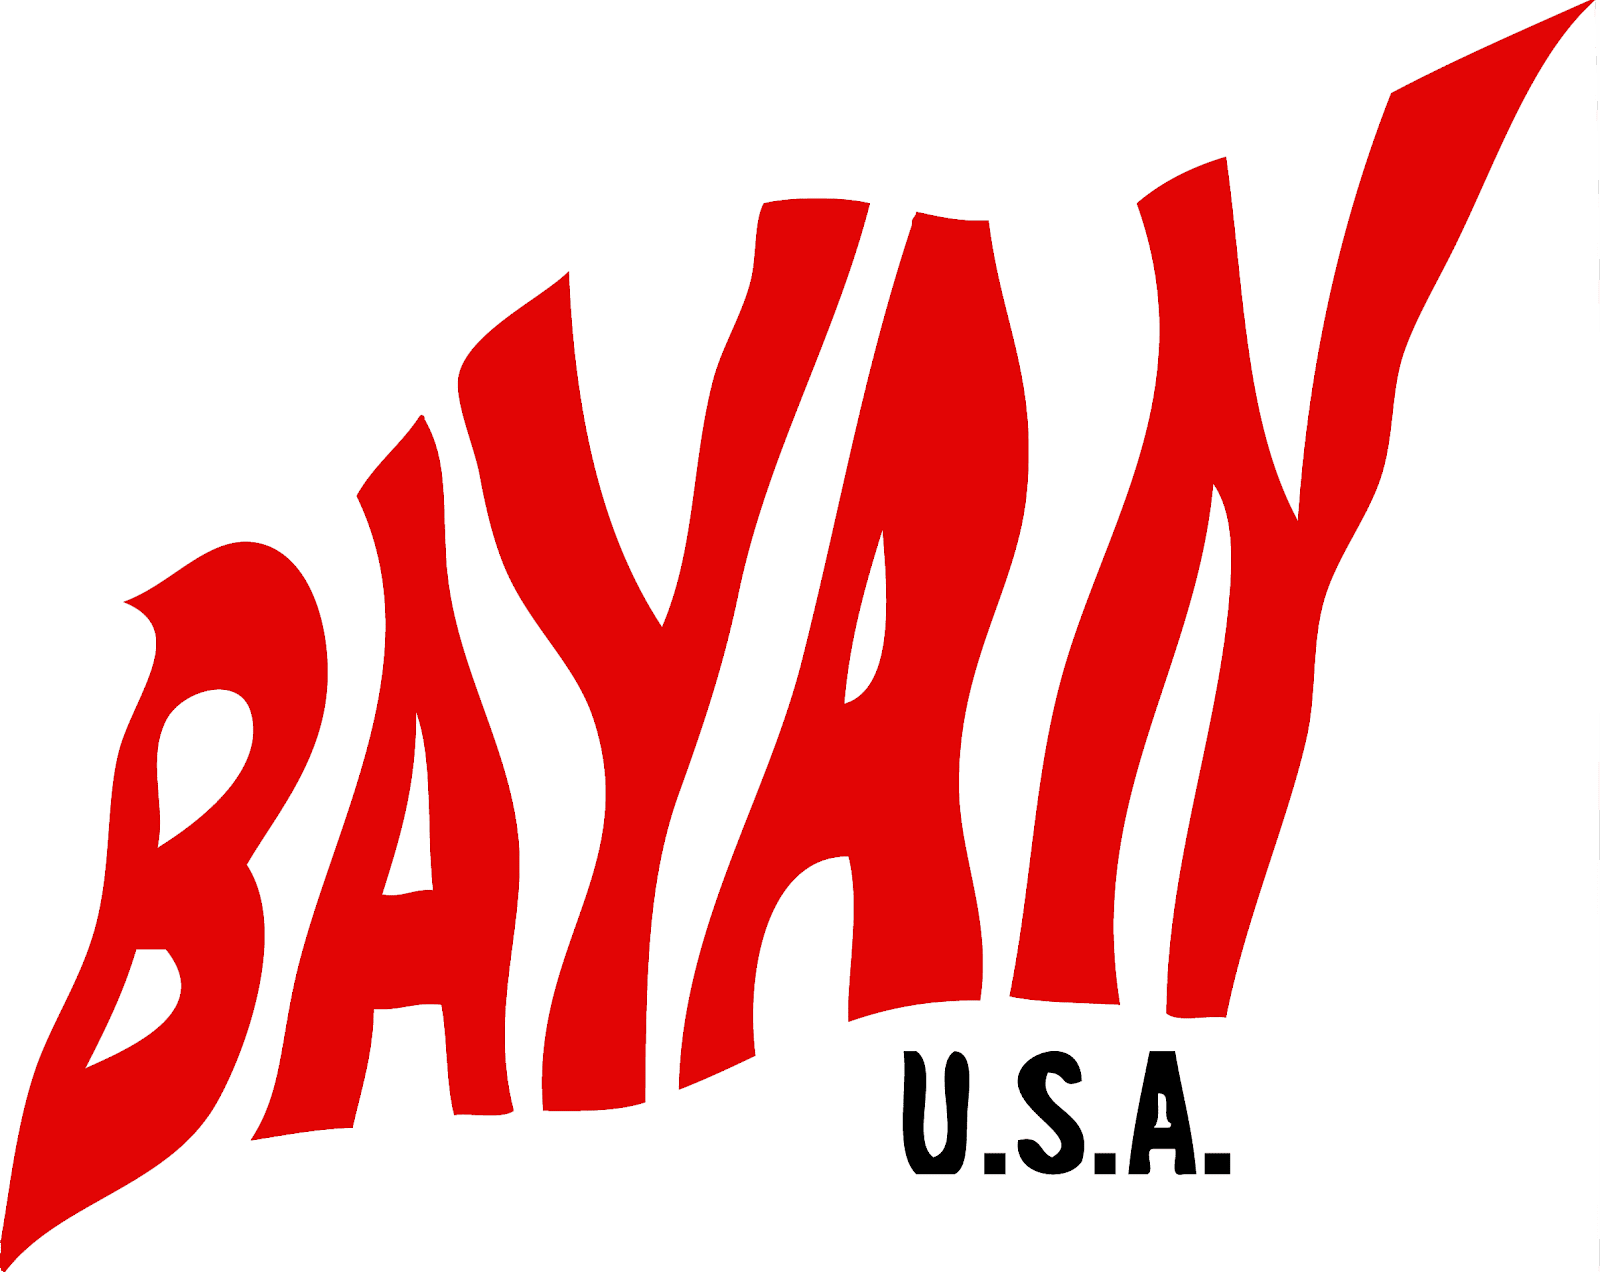 bayan-usa-logo-large-red.png